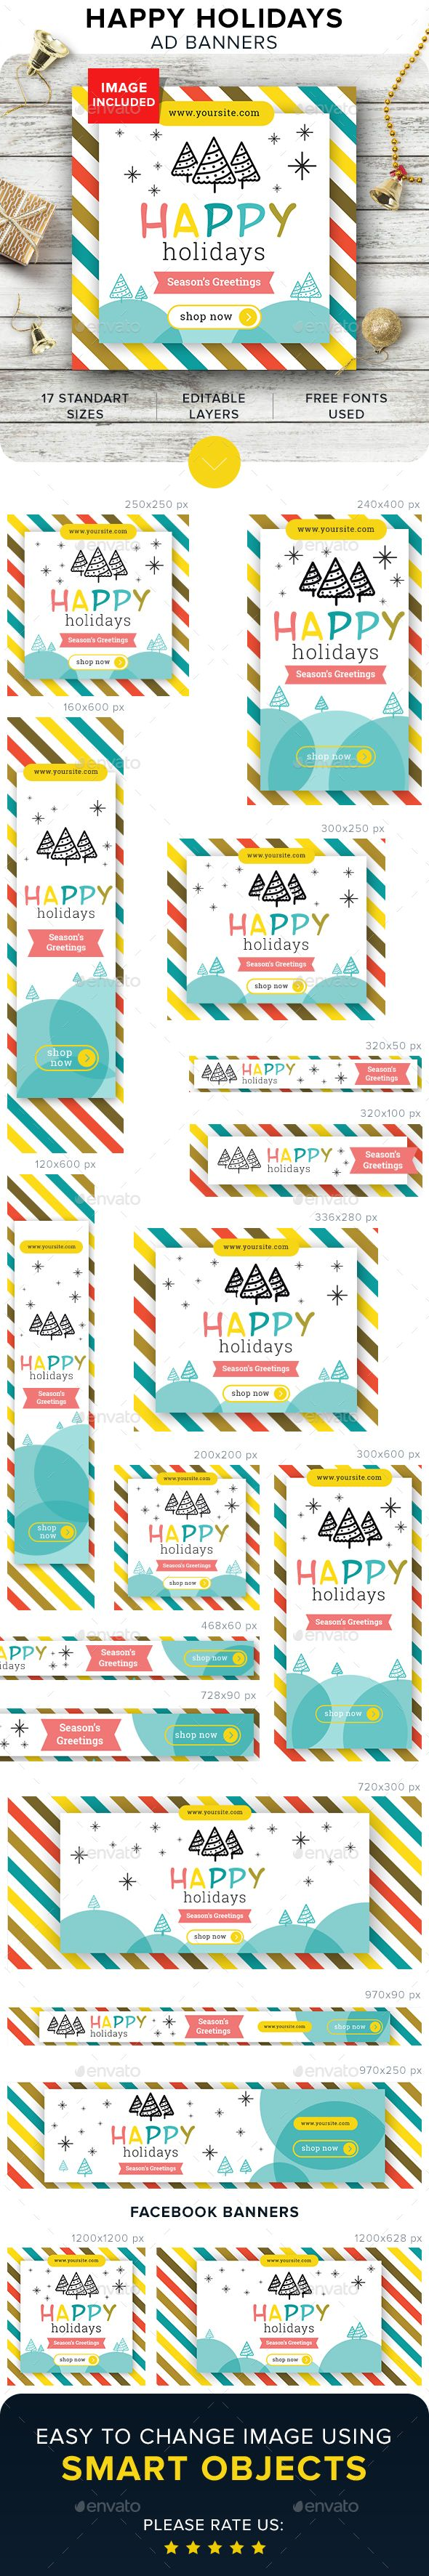 Happy Holidays Banners Template PSD #ads